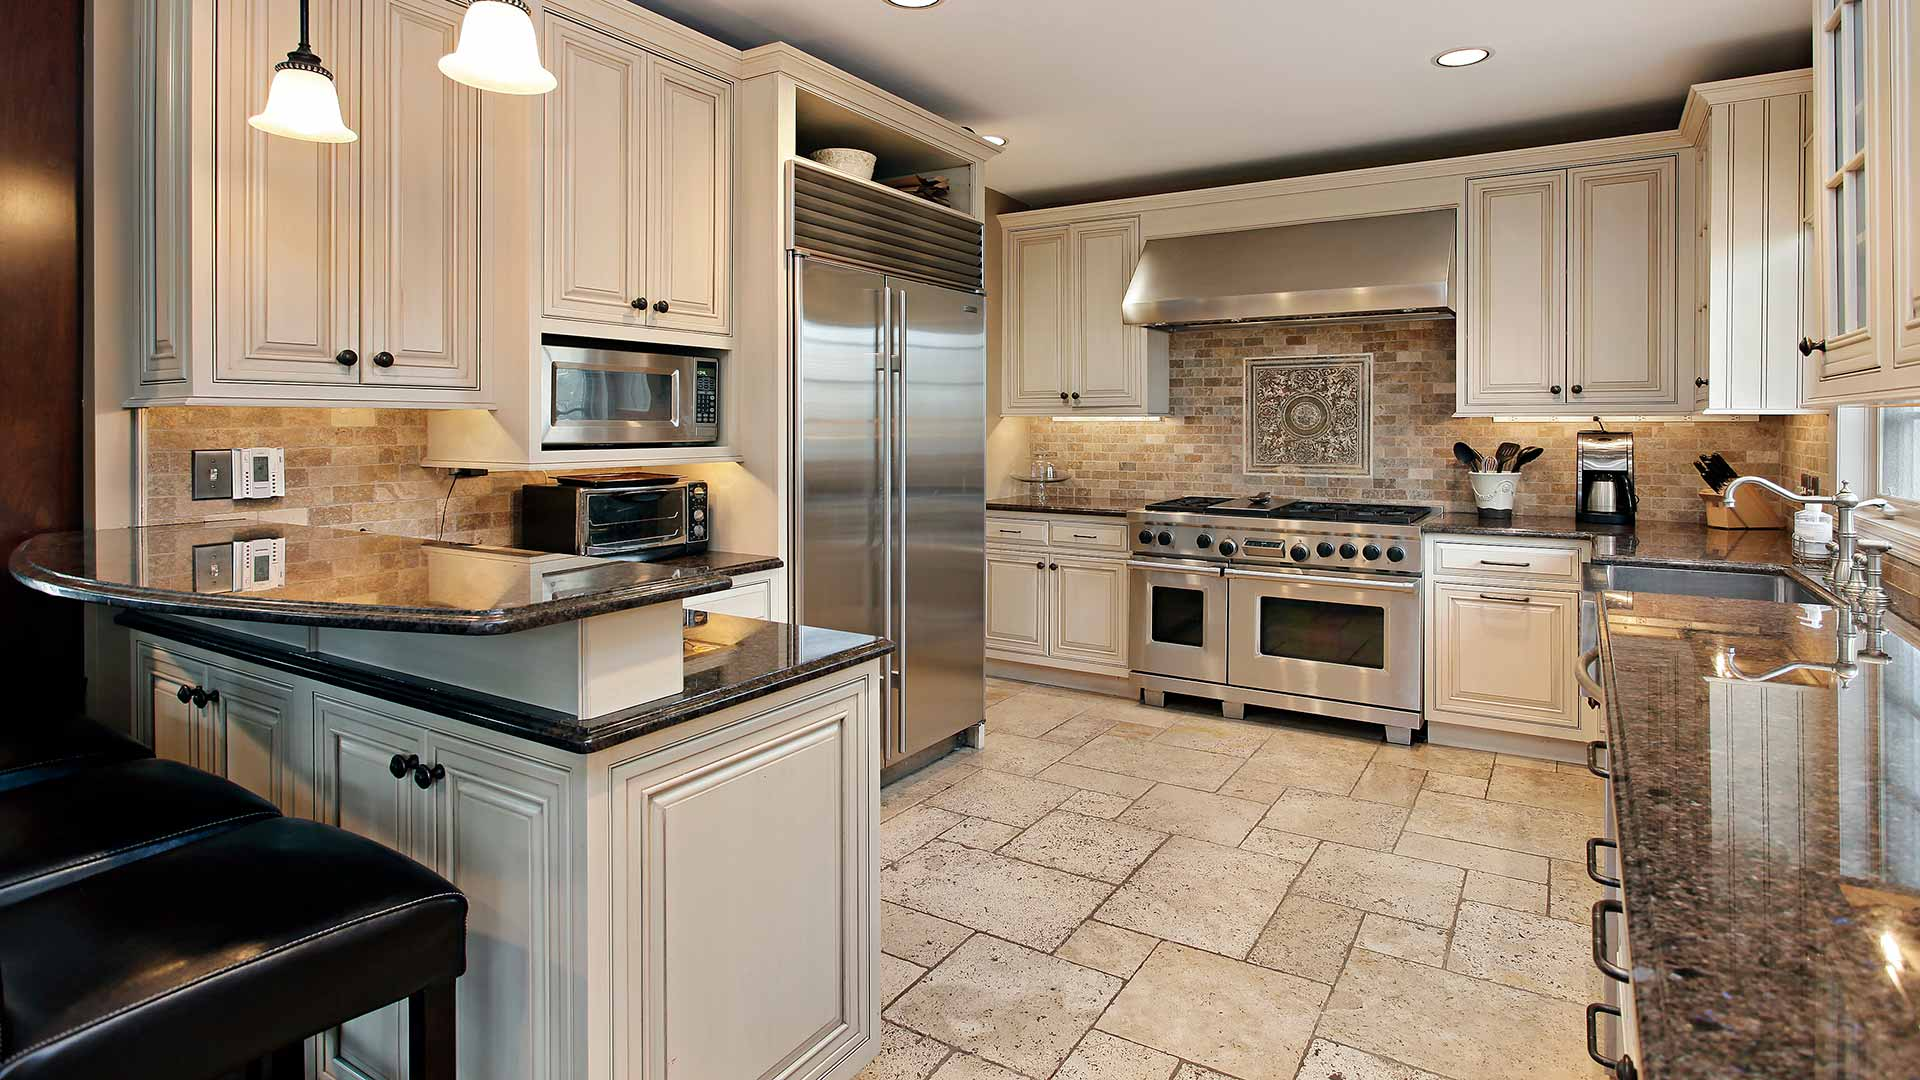 Our Most Popular Flooring Options for Your Next Kitchen Remodel